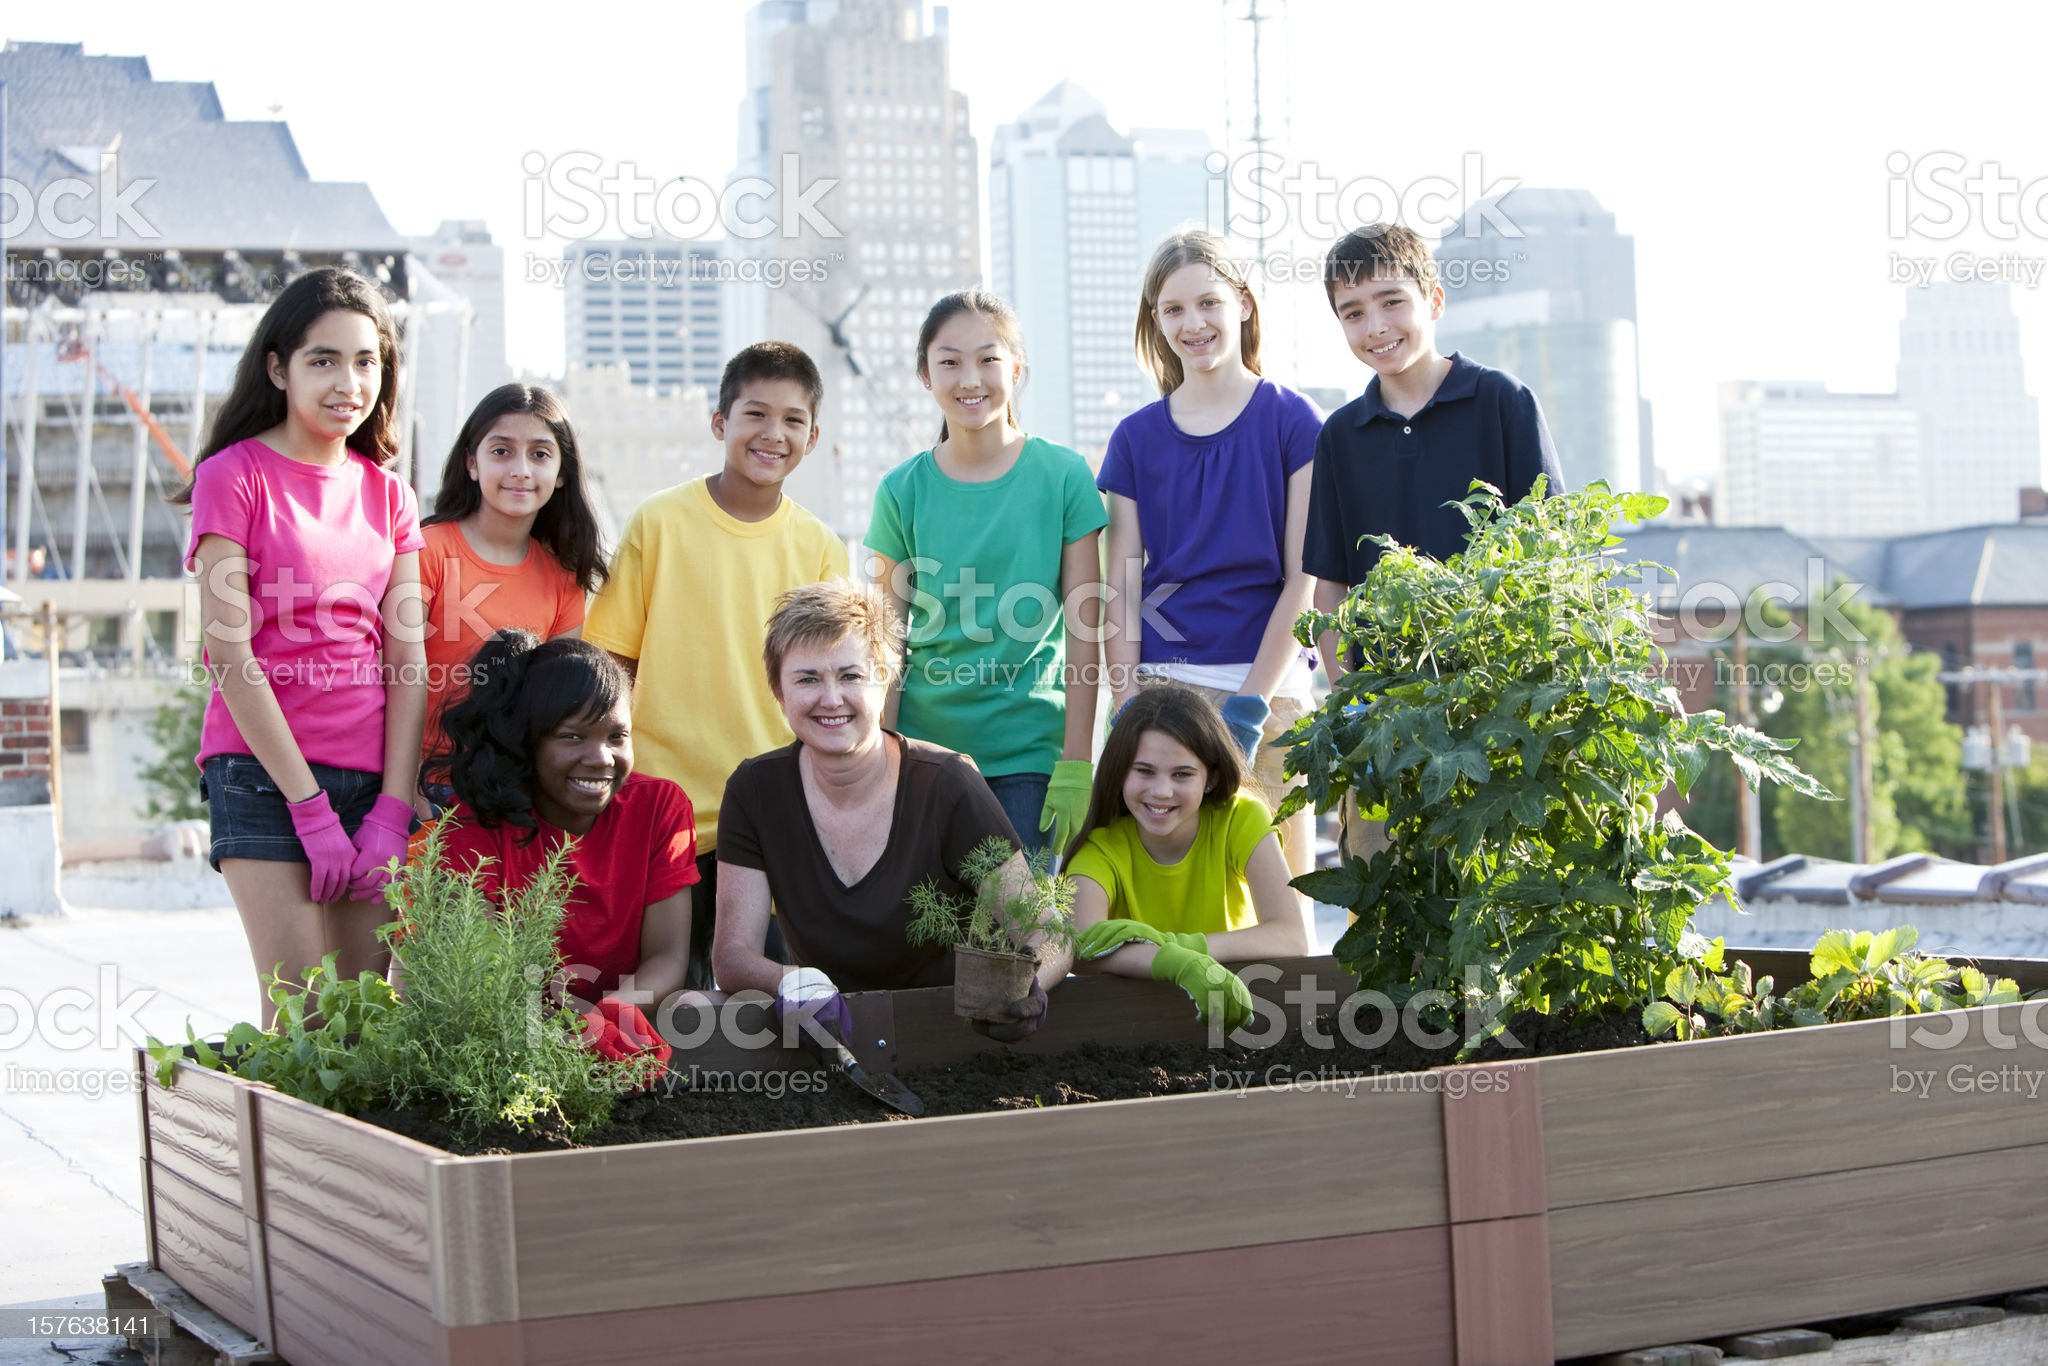 Go Green: Urban Rooftop Garden Planted by Ethnically Diverse Children royalty-free stock photo